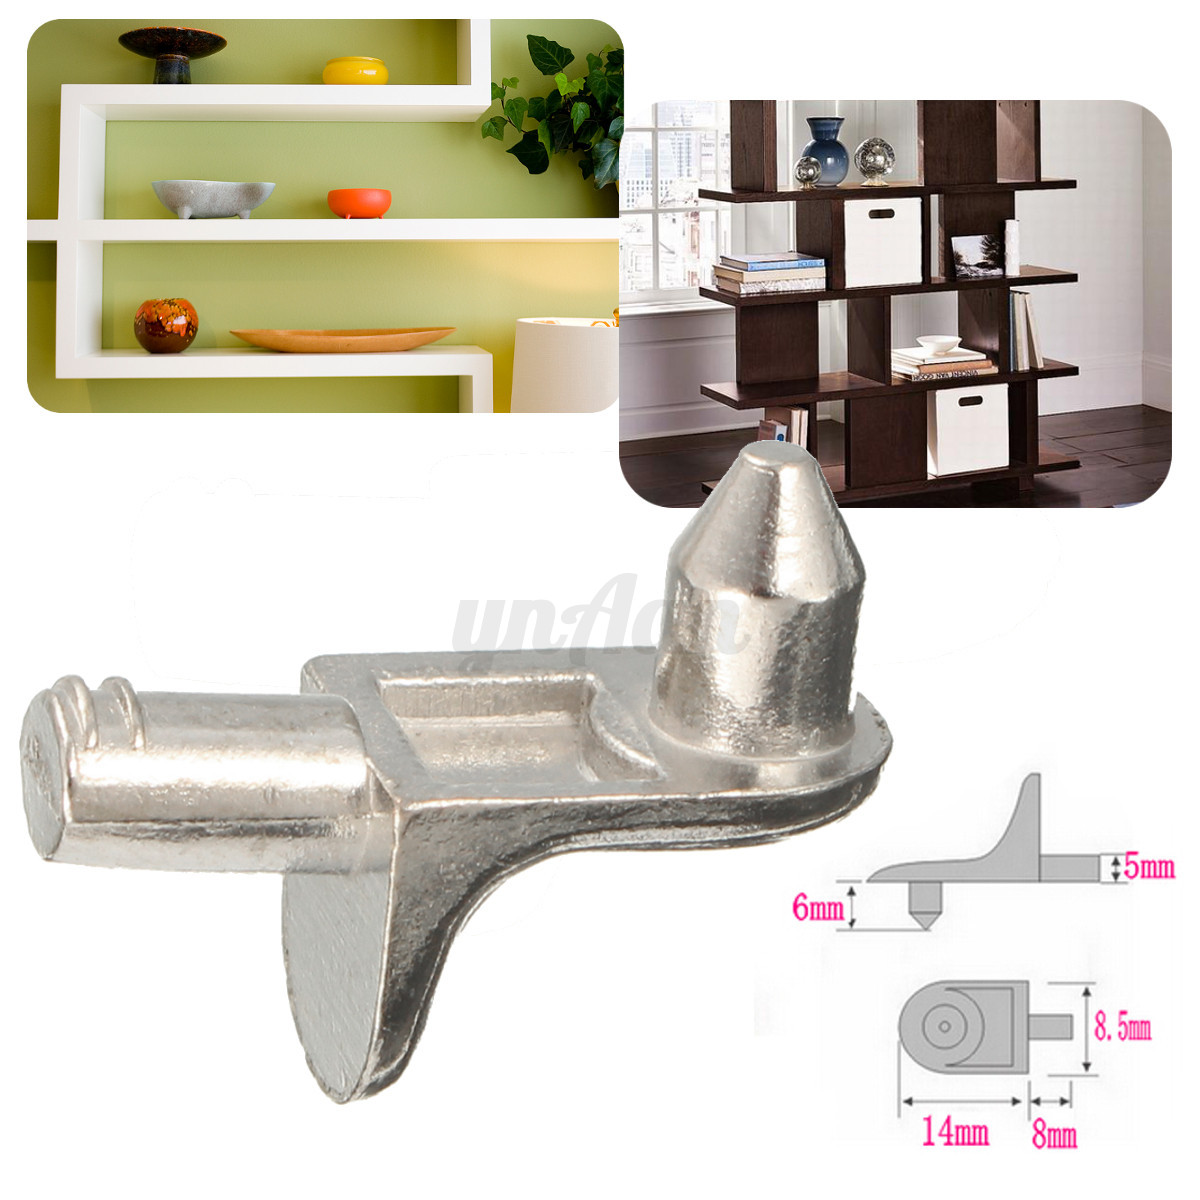 cabinet cupboard wooden board shelf holder support brackets kitchen